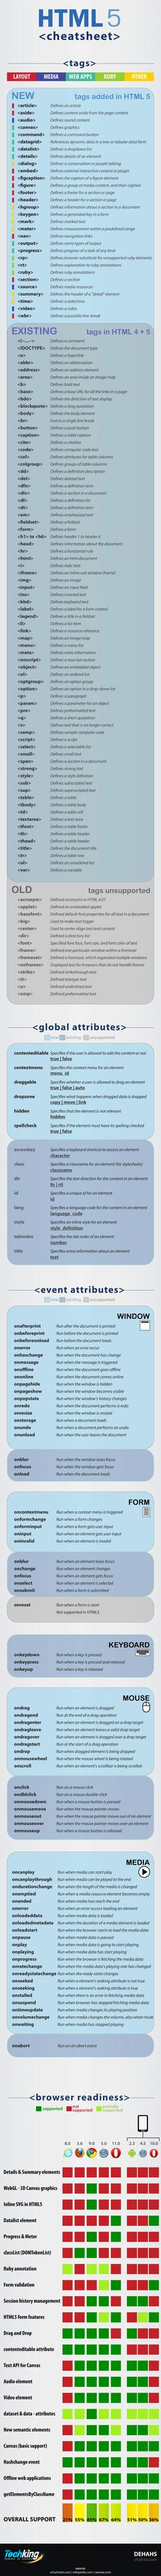 "This pin is a cheat sheet of the most recent html coding; html 5. While in the context of the class we may not need to be extremely familiar with all of the ins and out of computer programming and web design, the text explains html as an important part of web design. It explains that, ""html allows you to put tags around your text so that the browser knows how to display it on the screen (182)."""